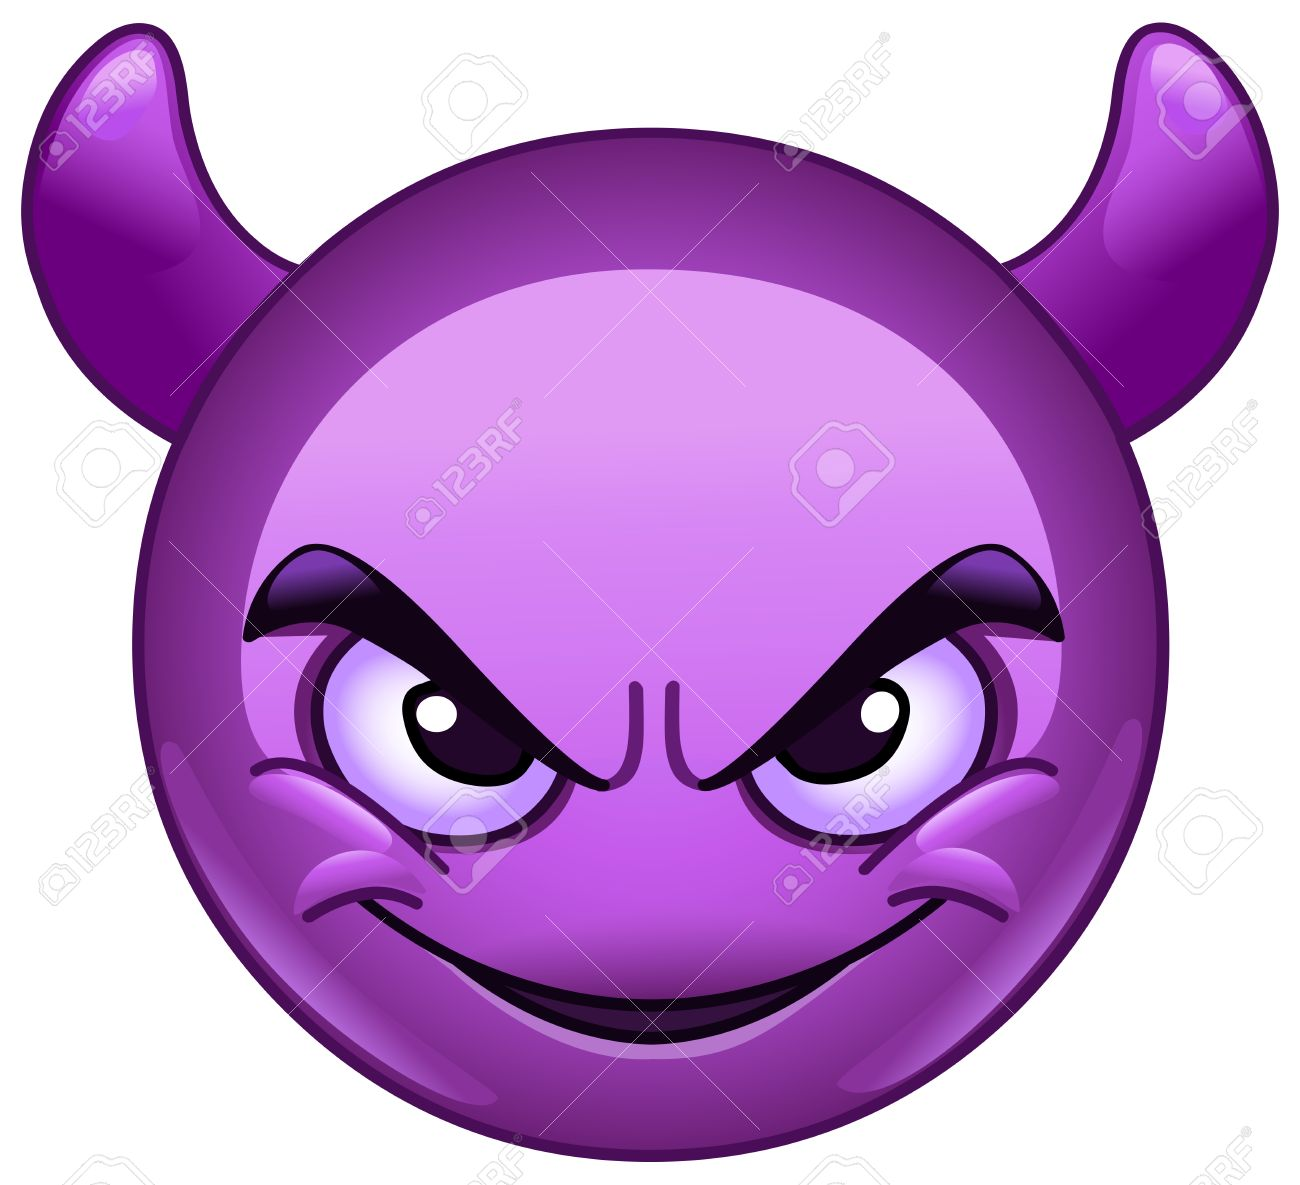 Smiling Face With Horns Purple Devil Emoticon Stock Photo Picture And Royalty Free Image Image 59131632